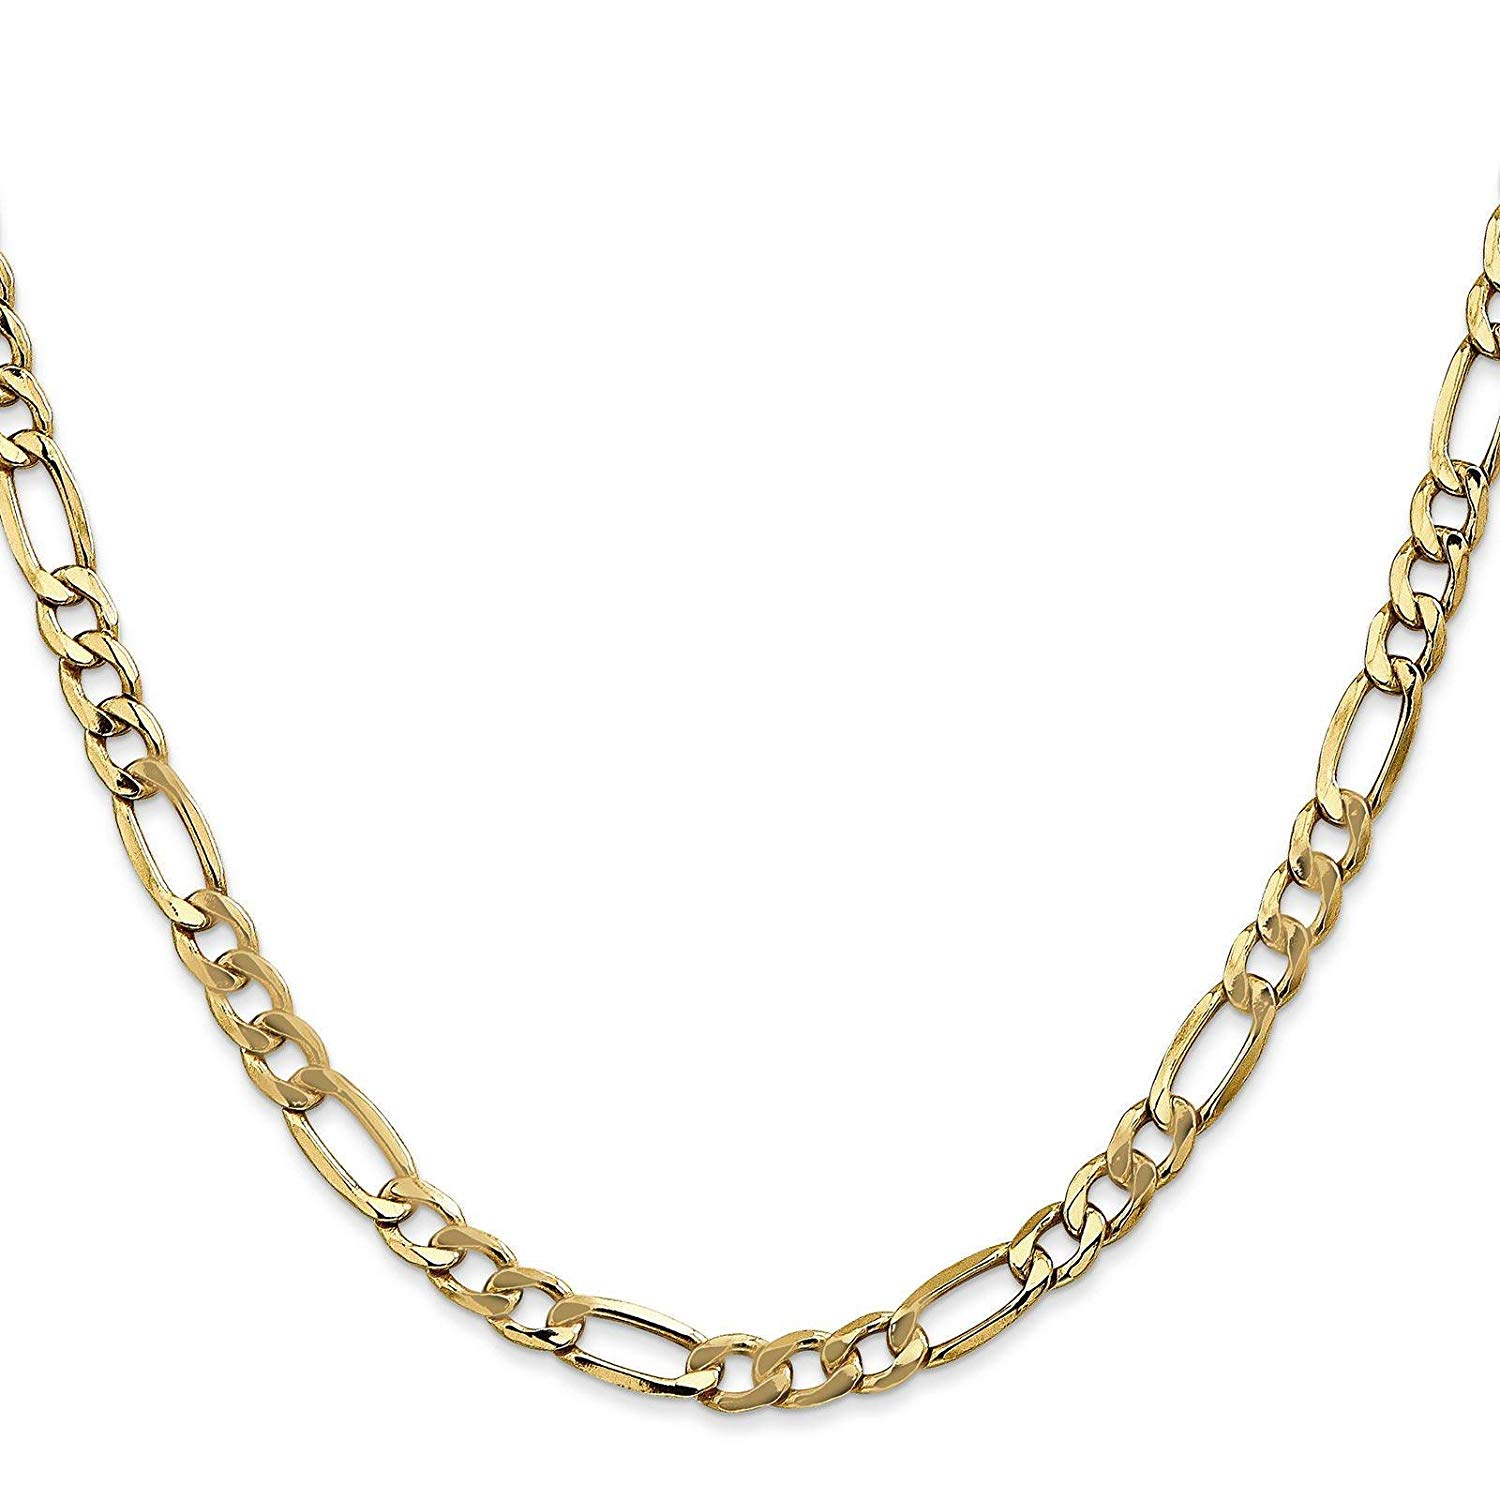 "14k Yellow Gold 5.2mm Semi-Solid Polished Figaro Chain Necklace Bracelet 7"" - 24"""